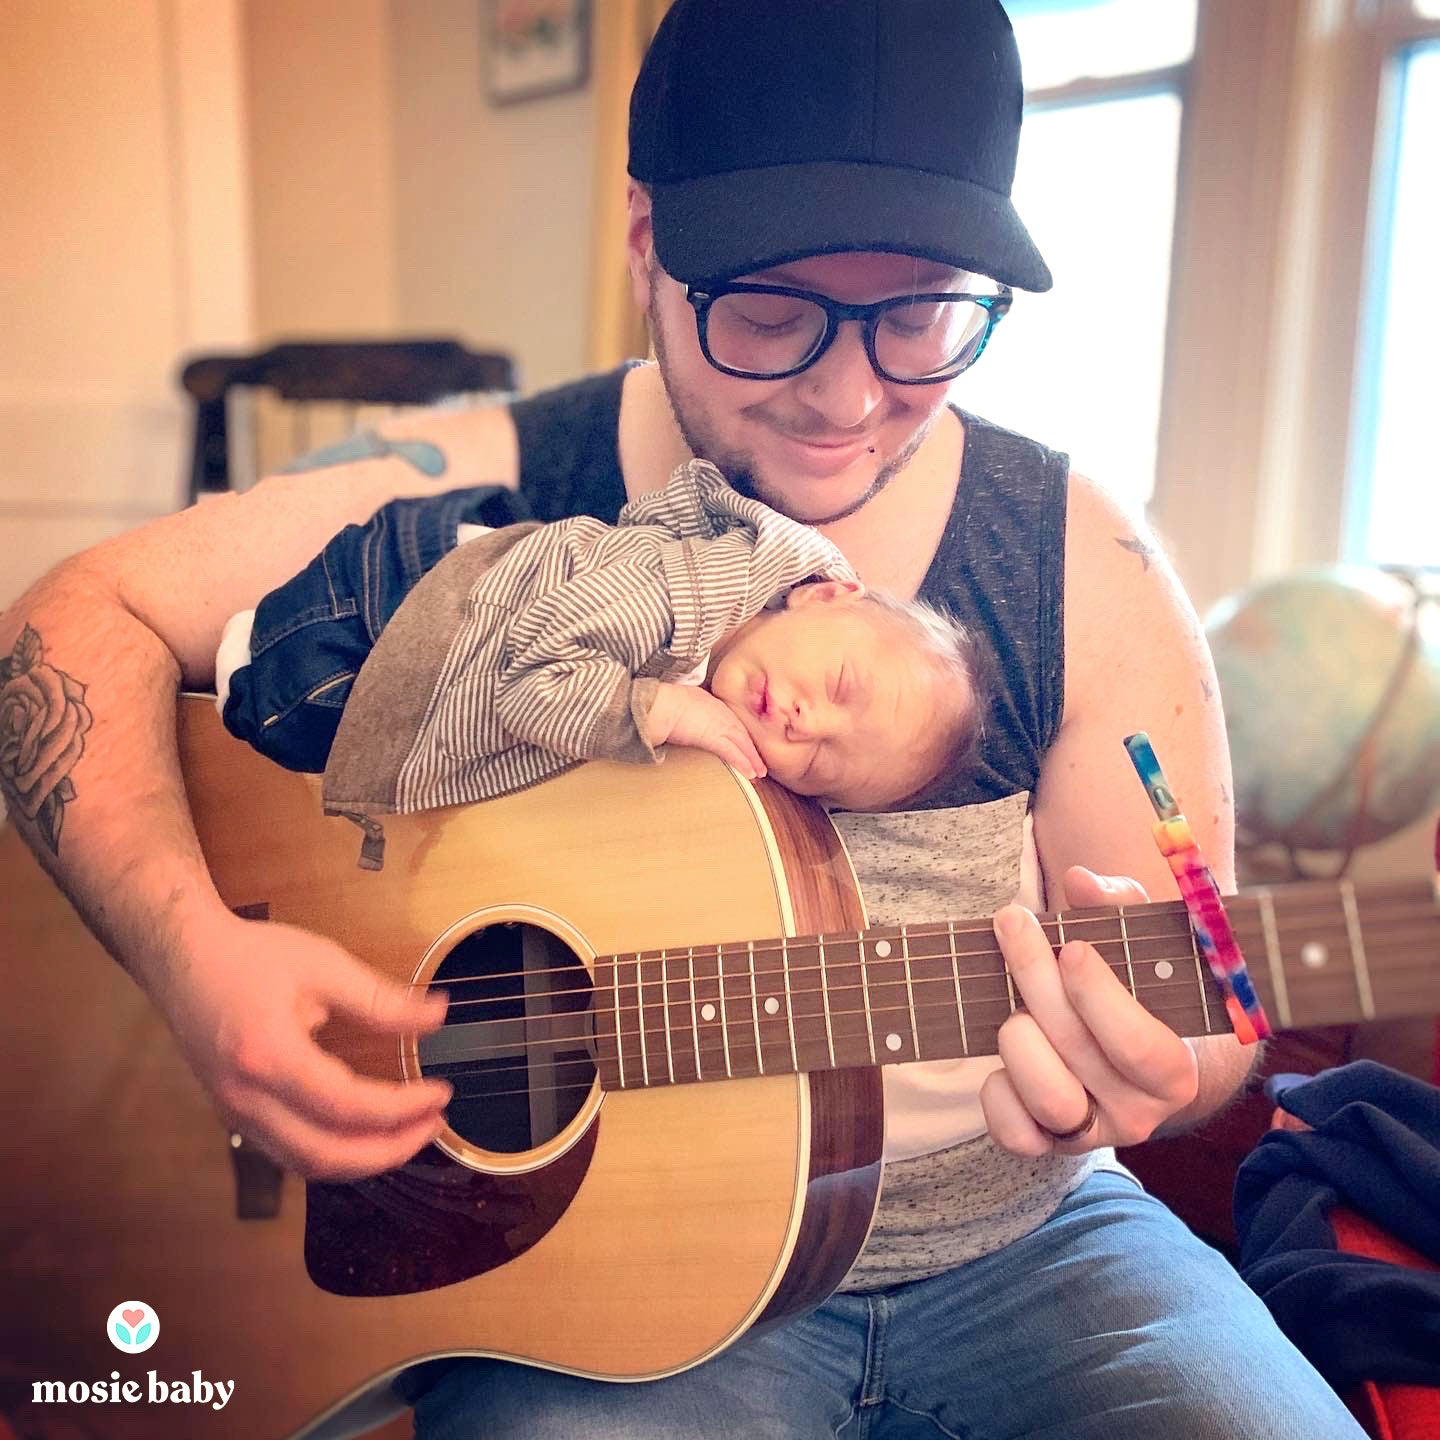 Mosie Dad playing the guitar with baby